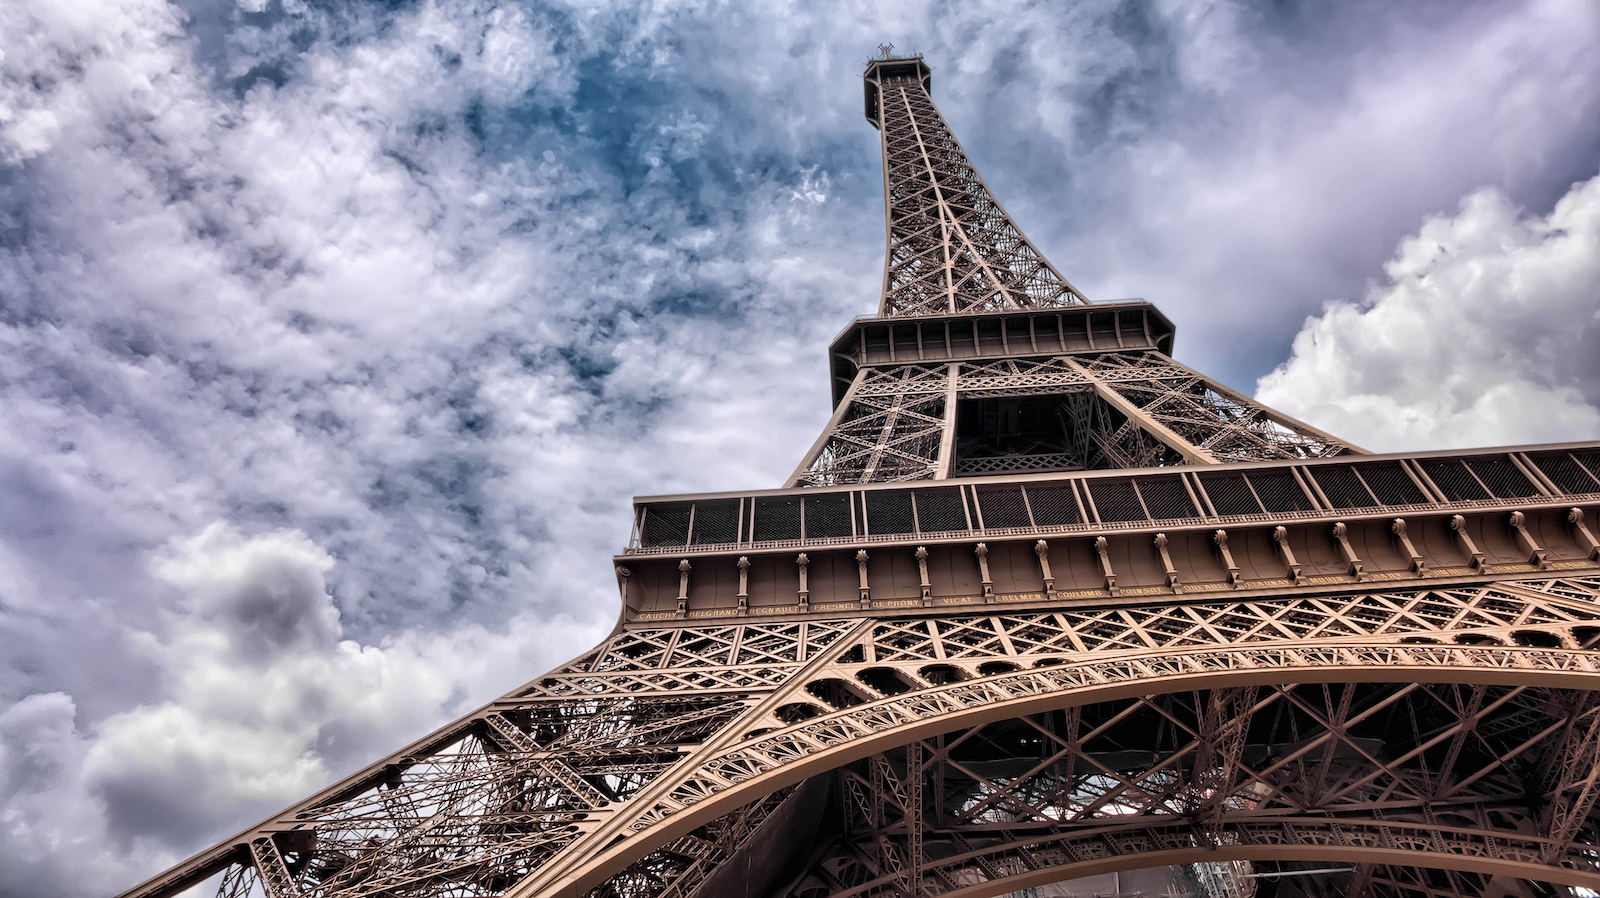 Download Free Photos Canva Eiffel Tower Daytime